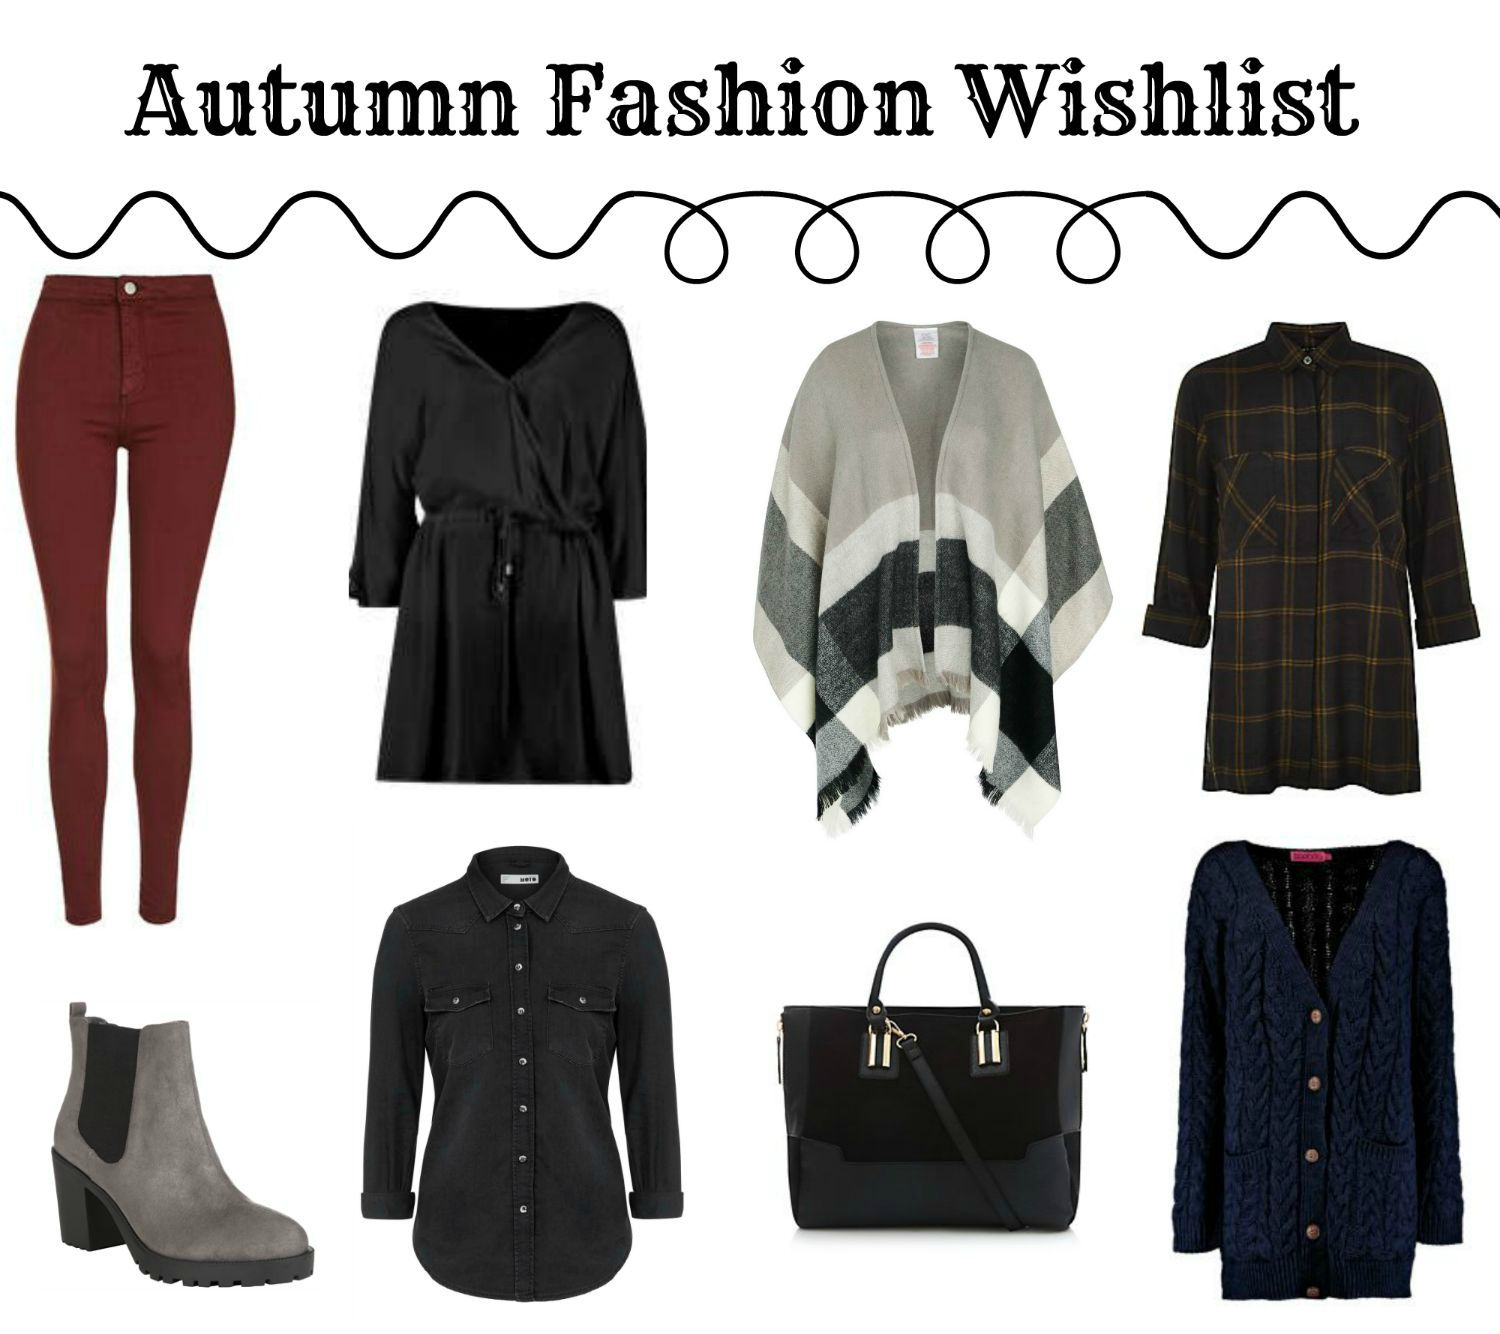 Autumn Fashion Wishlist 2015